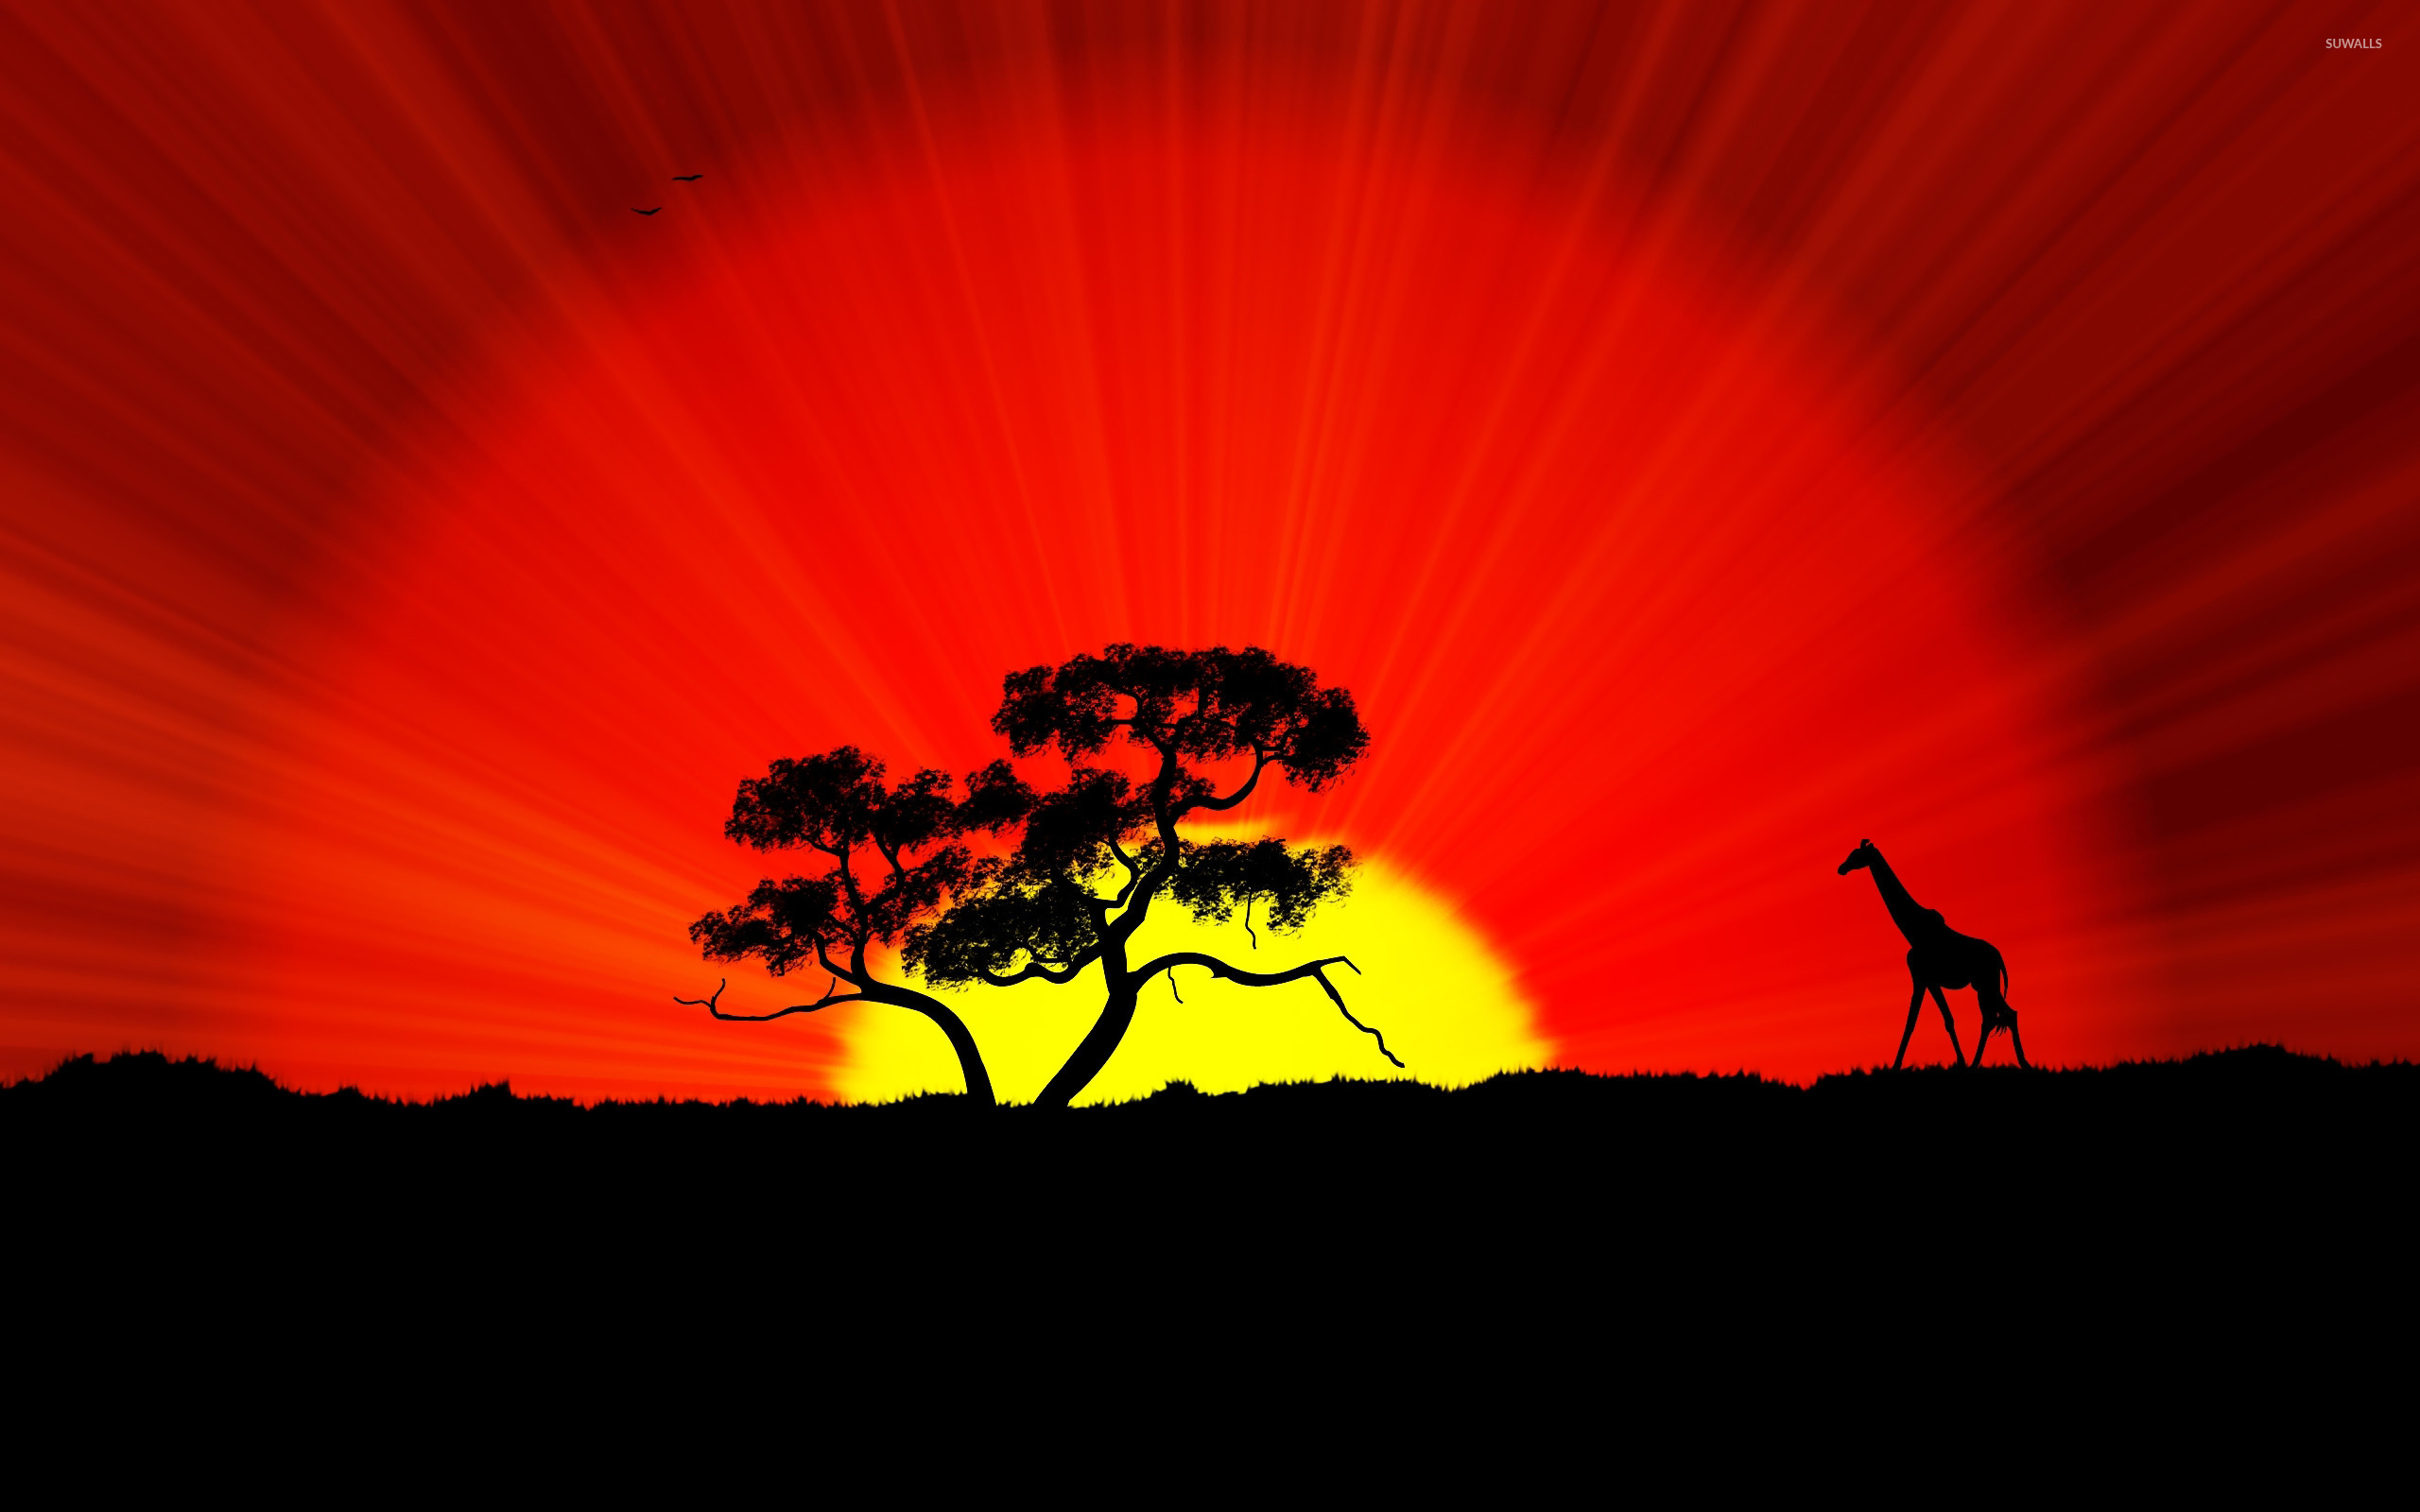 Giraffe And Tree Silhouette In The Sunset Wallpaper